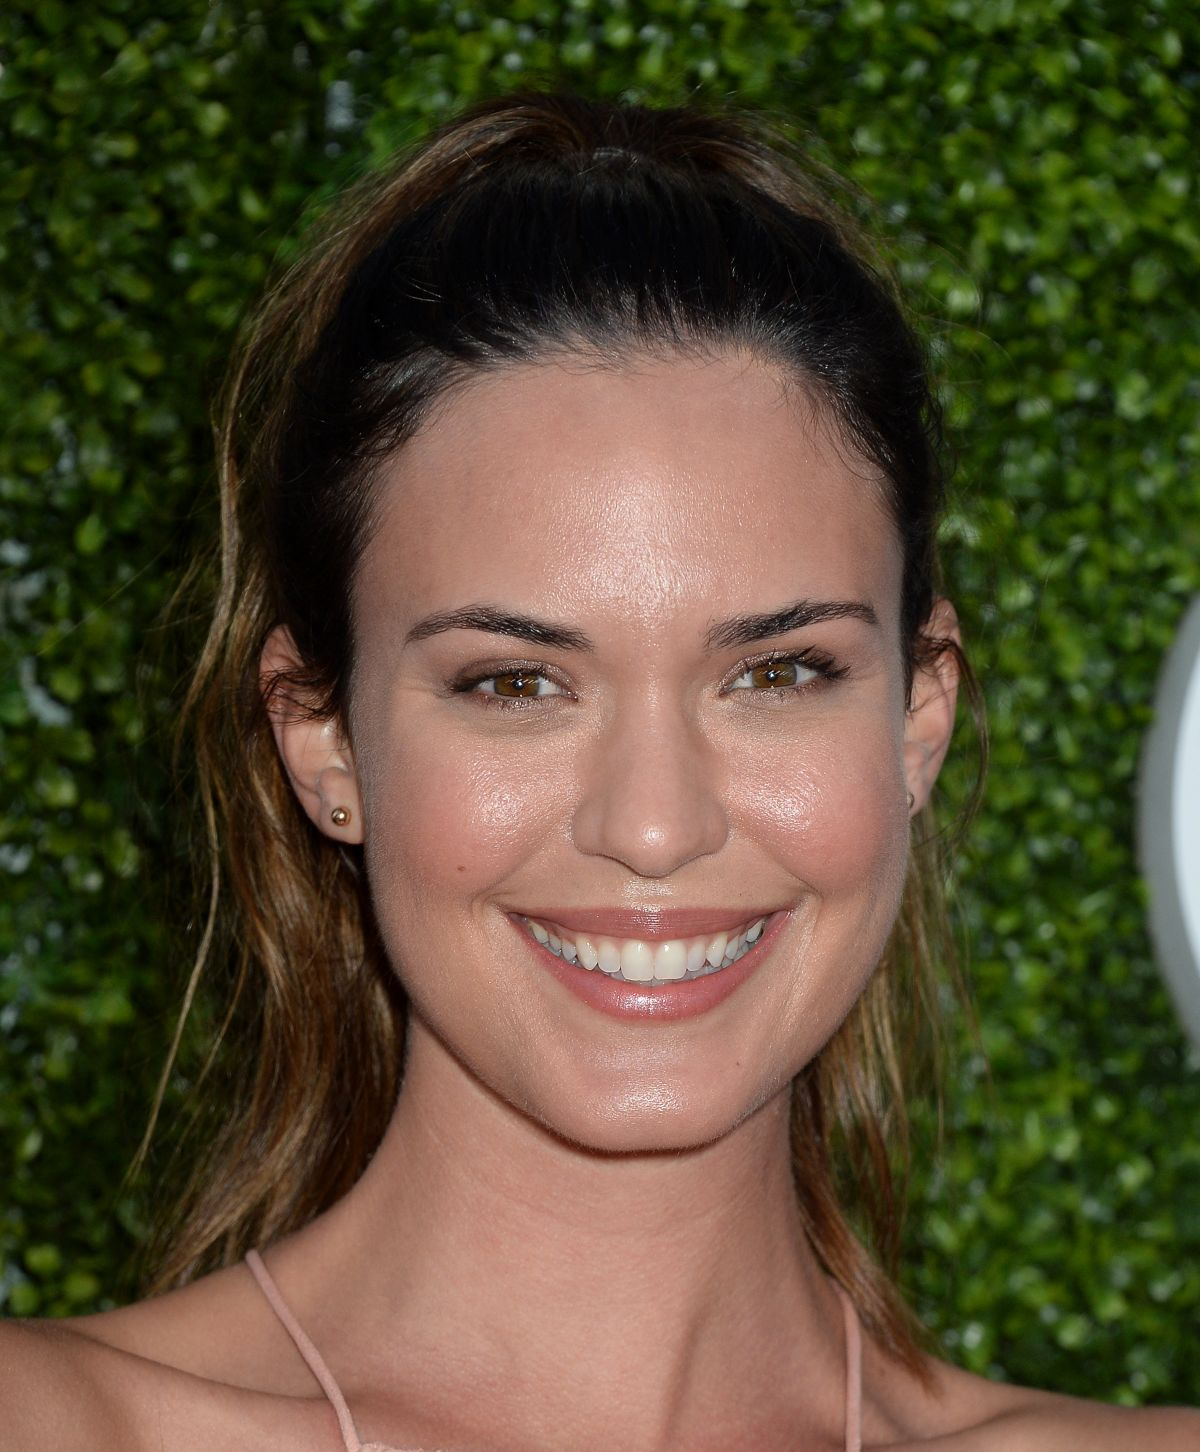 Full HQ Wallpapers of Odette Annable At CBS CW And Showtime 2016 TCA Summer Press Tour Party In Westwood